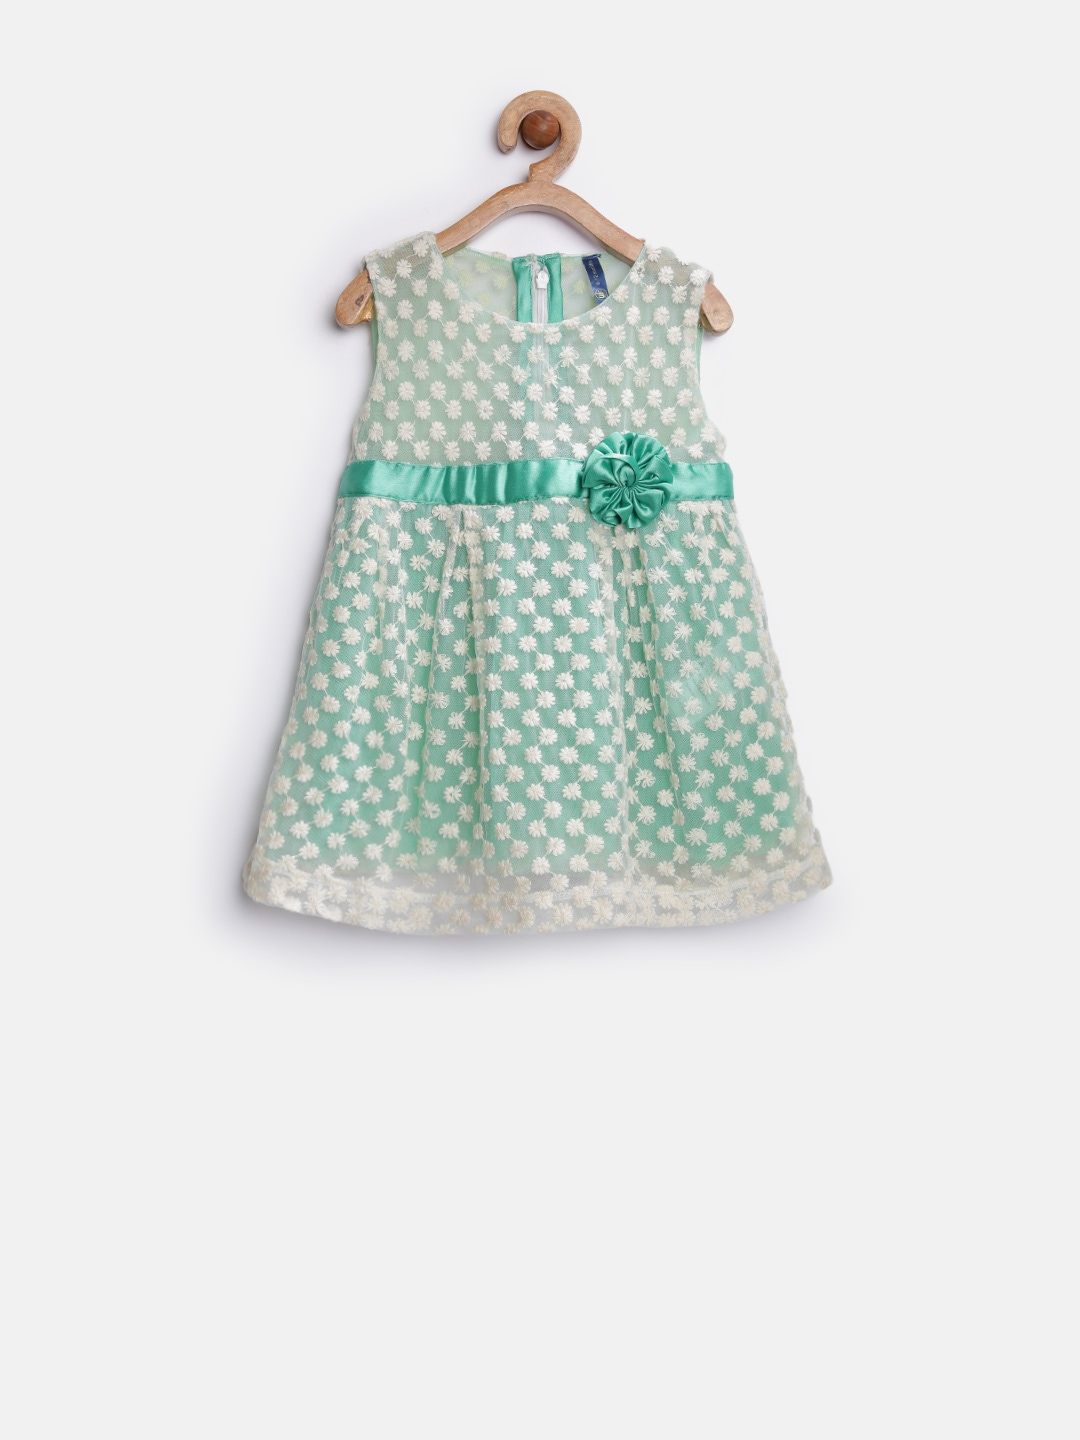 bb6d9cf4d863 Baby Girl Dresses - Buy Dresses for Baby Girl Online